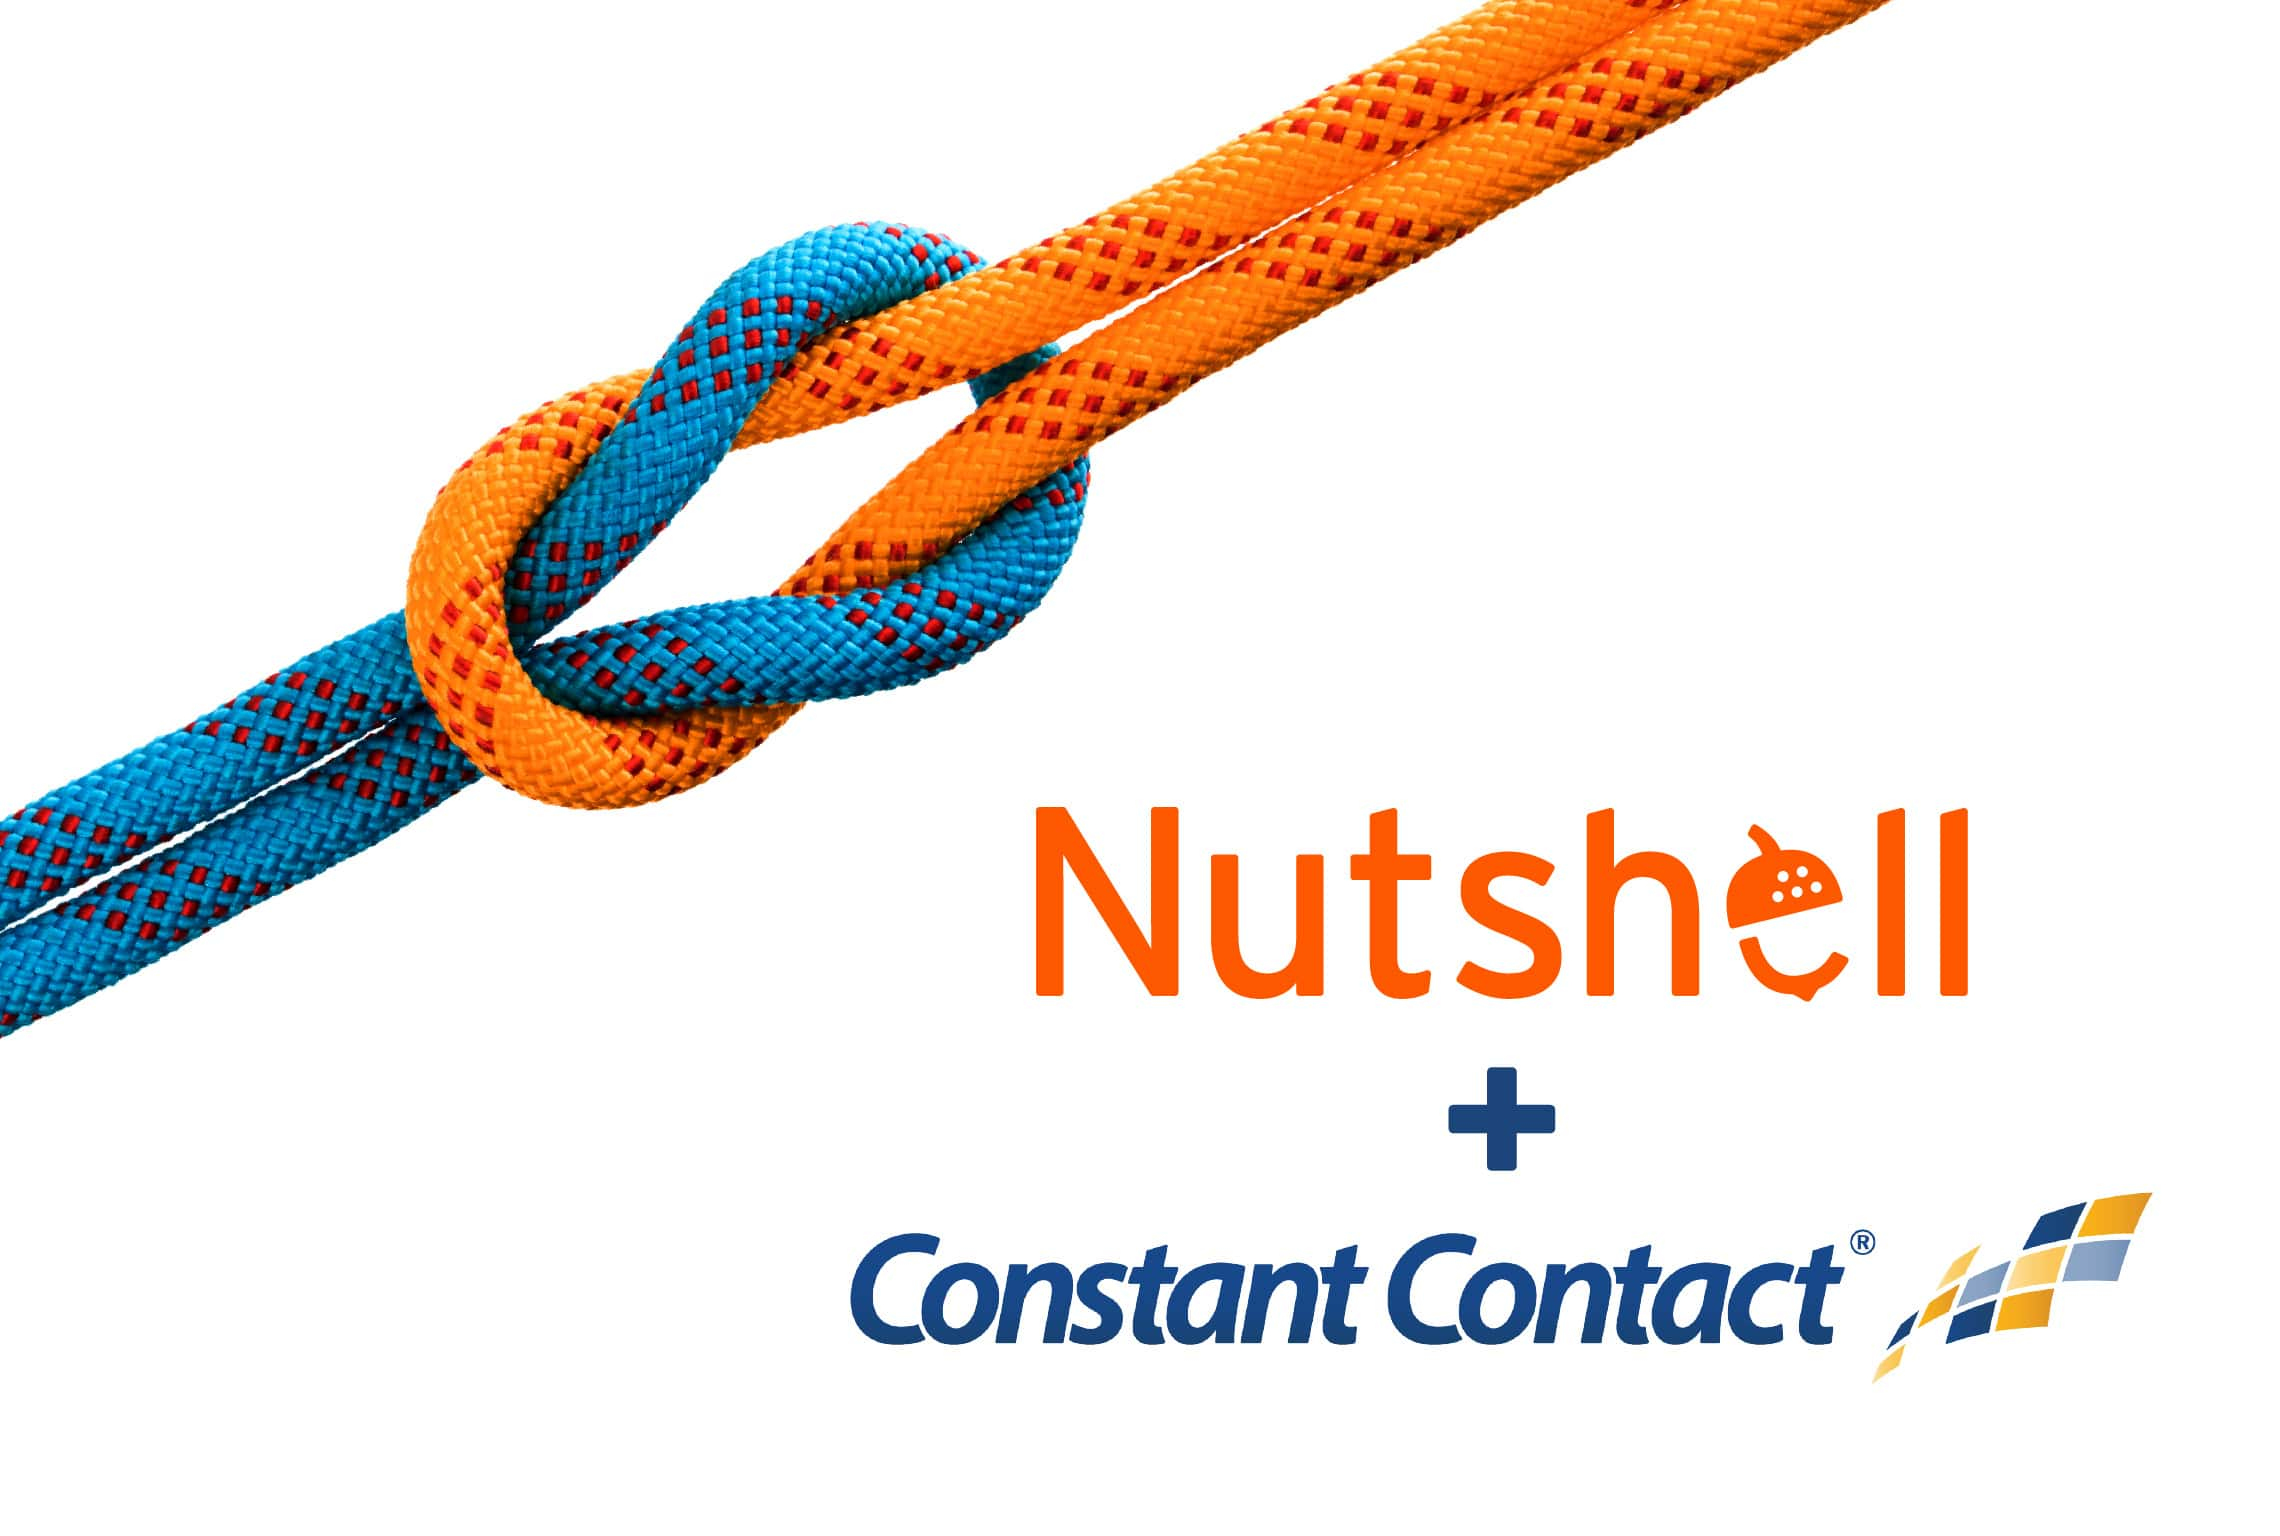 nutshell constant contact integration best constant contact crm integration